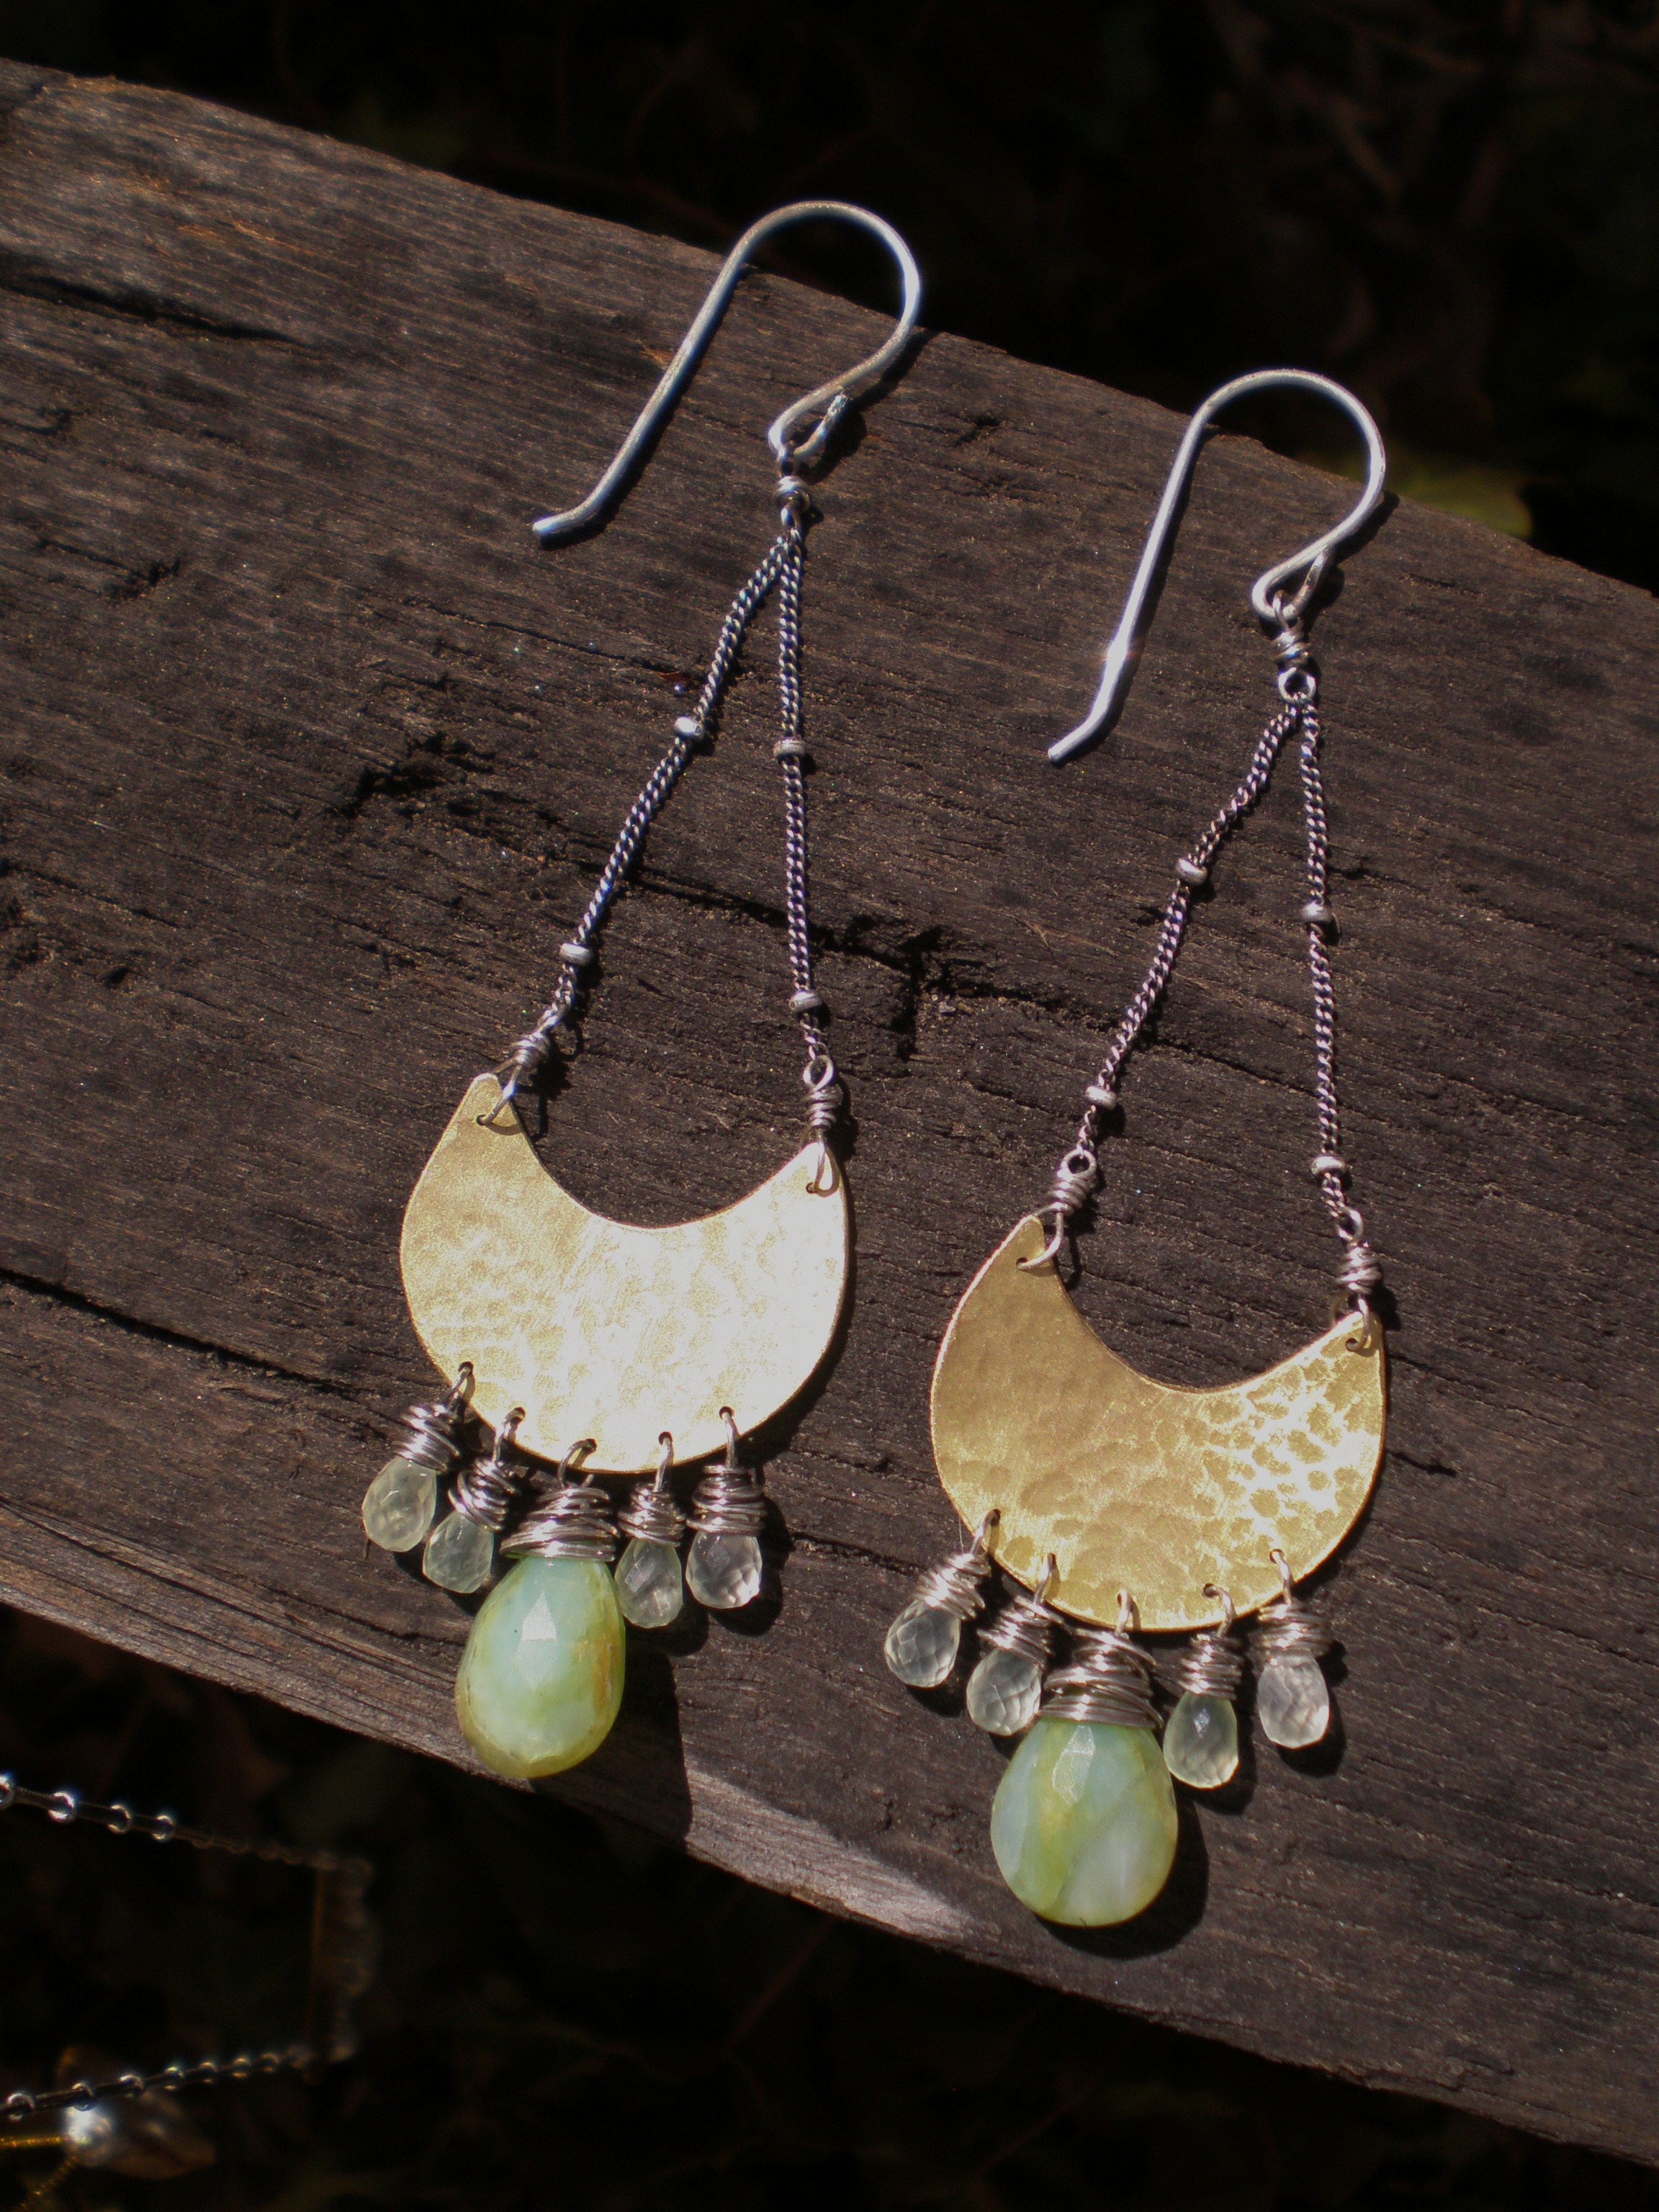 Gypsy Earring  : Hammered brass sheild, sterling silver accents, Peruvian opal & prenite crystals.